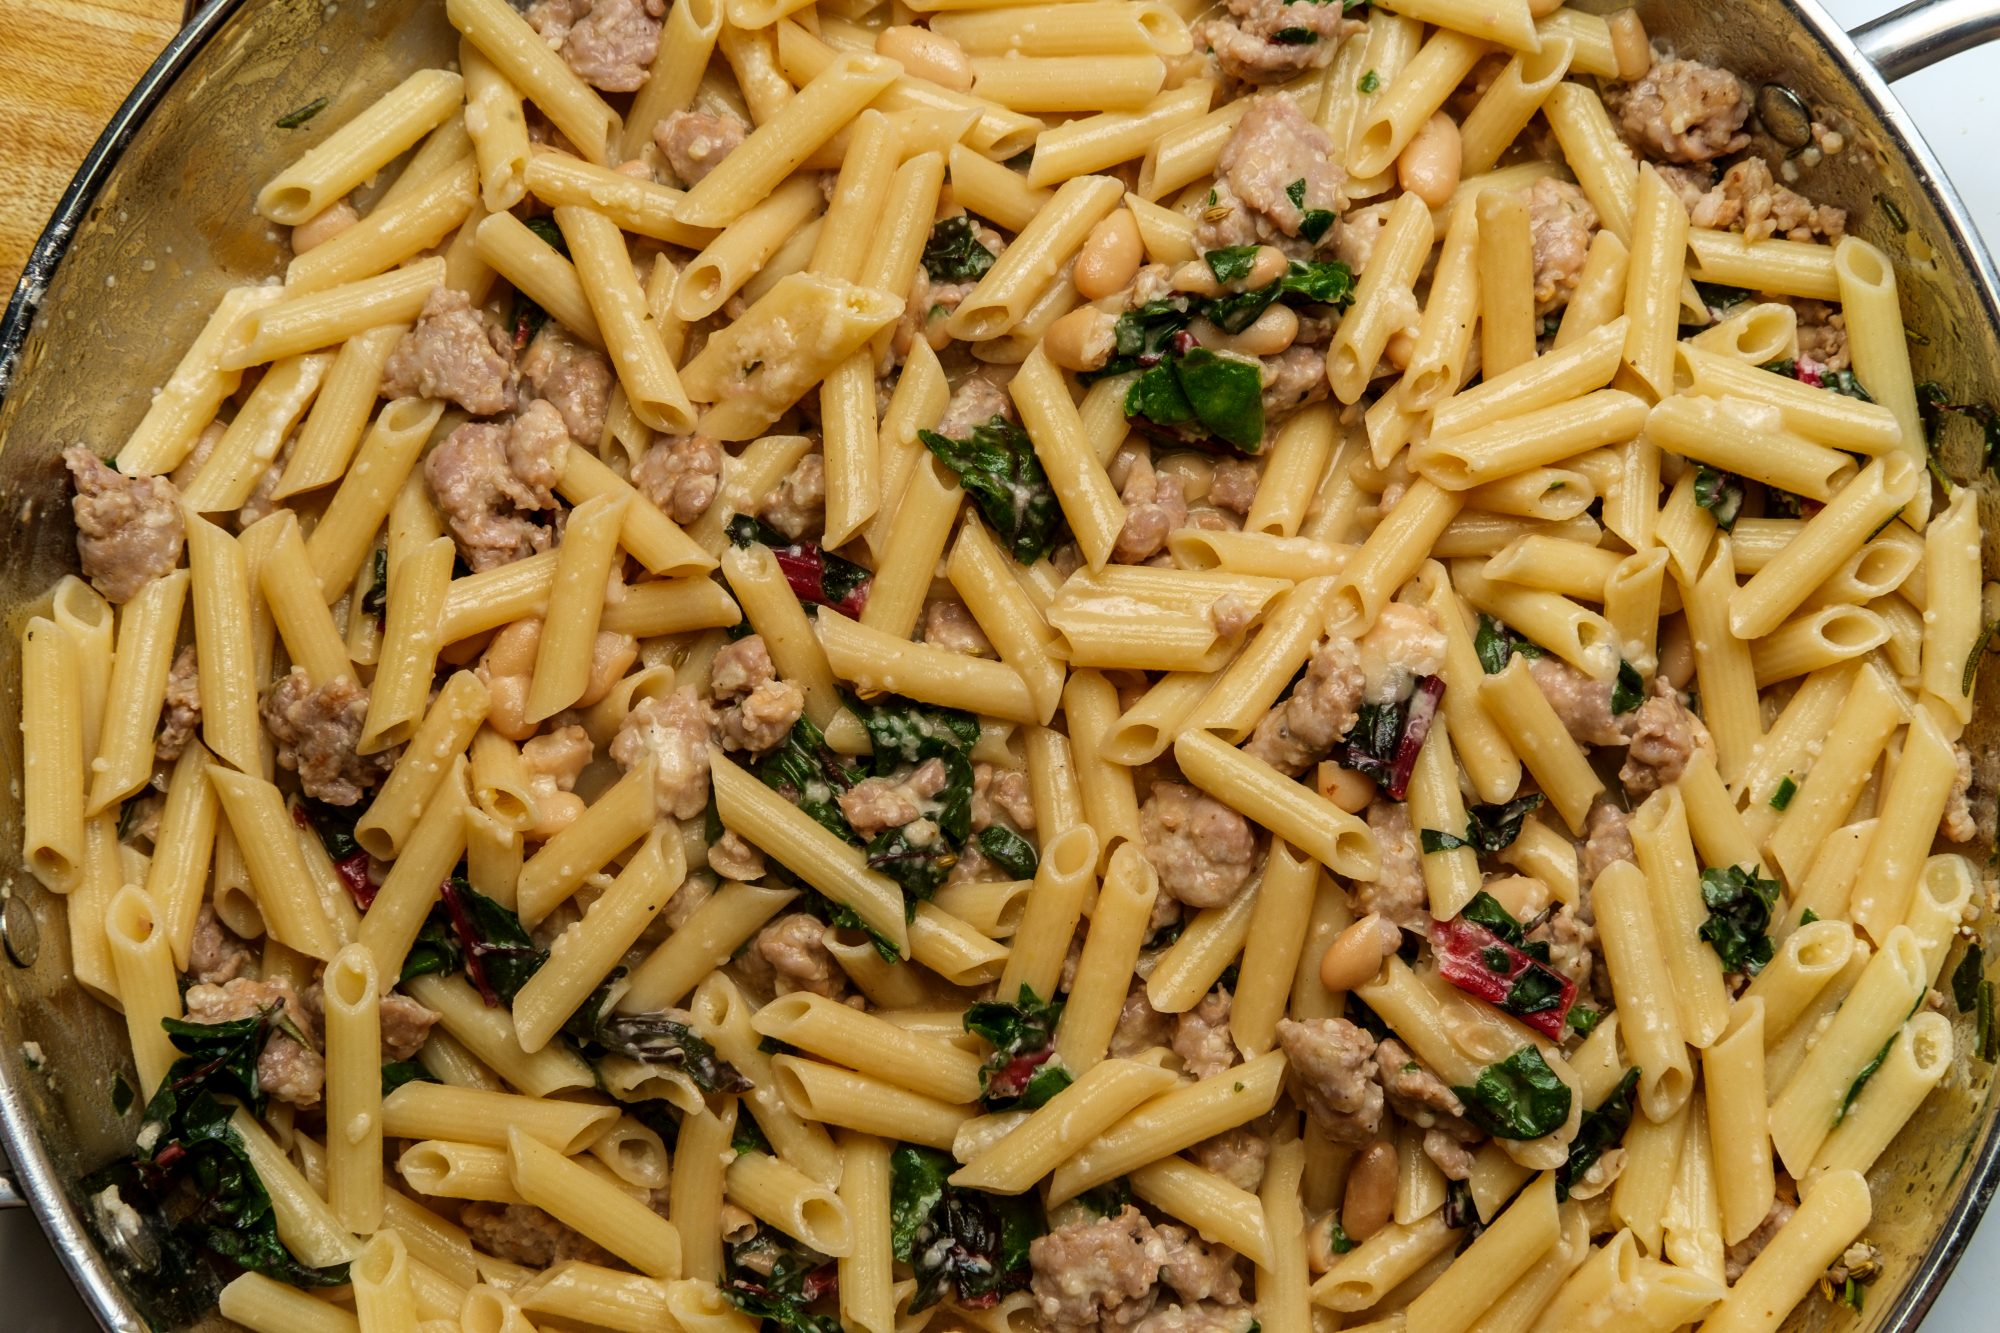 Skillet of penne and sausage pasta